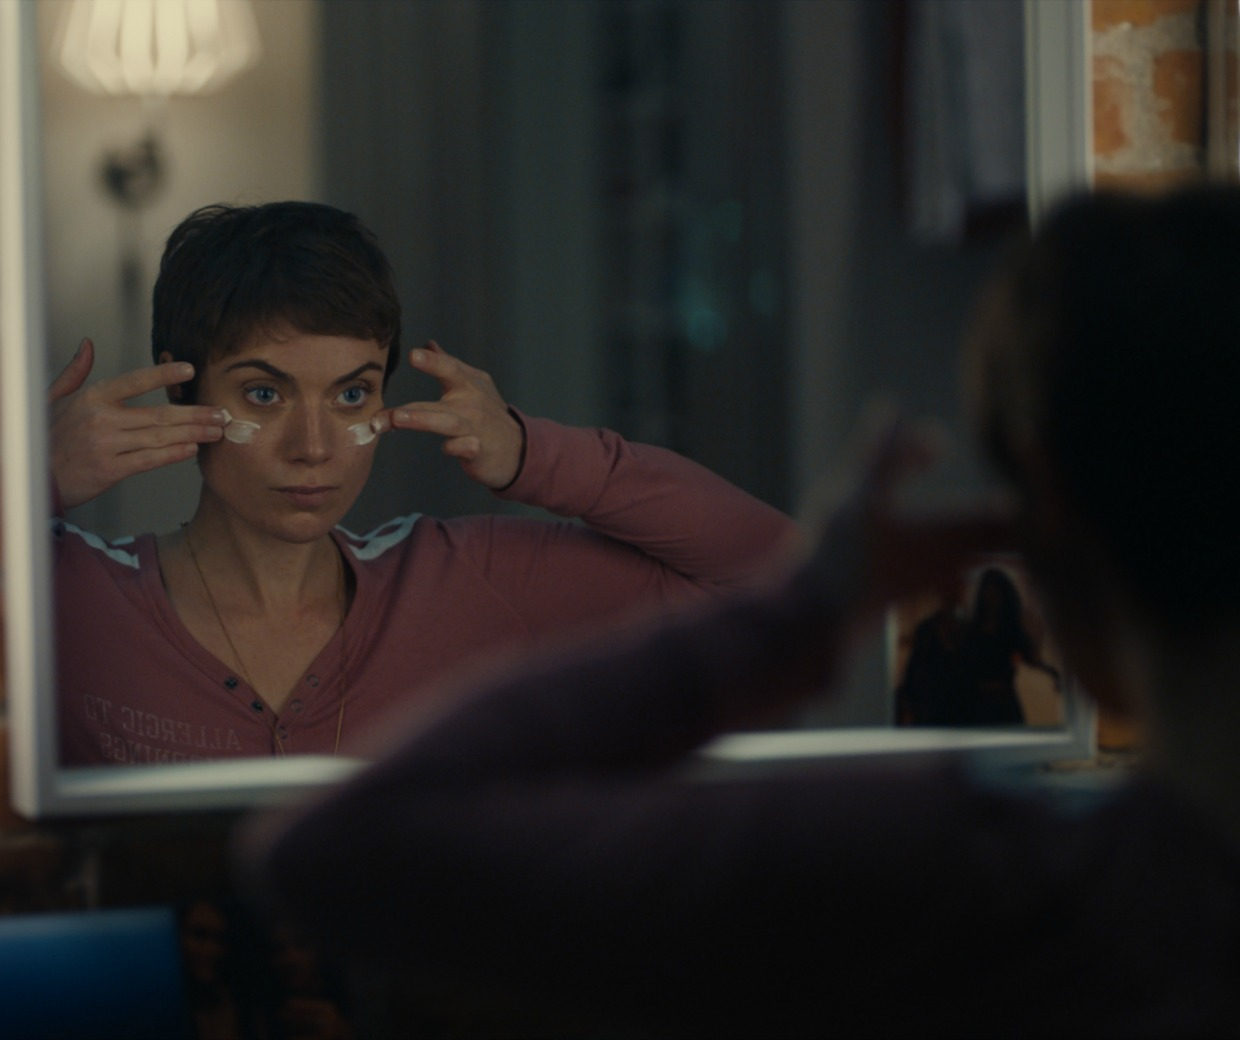 Ikea pledges the wonderful everynight for new sleep for Ikea commercial 2017